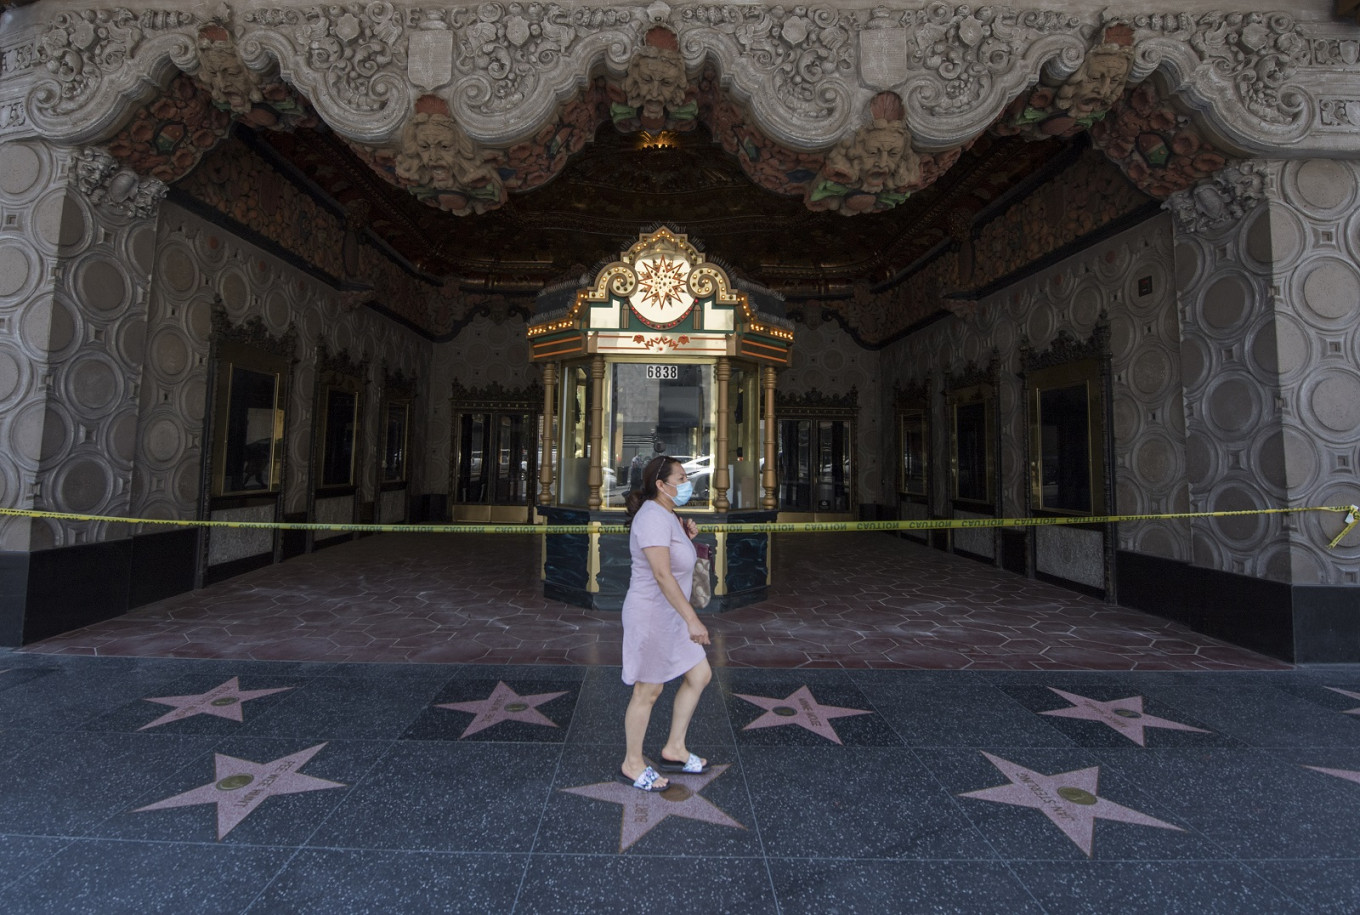 Hollywood poised for big-screen gamble as theaters reopen